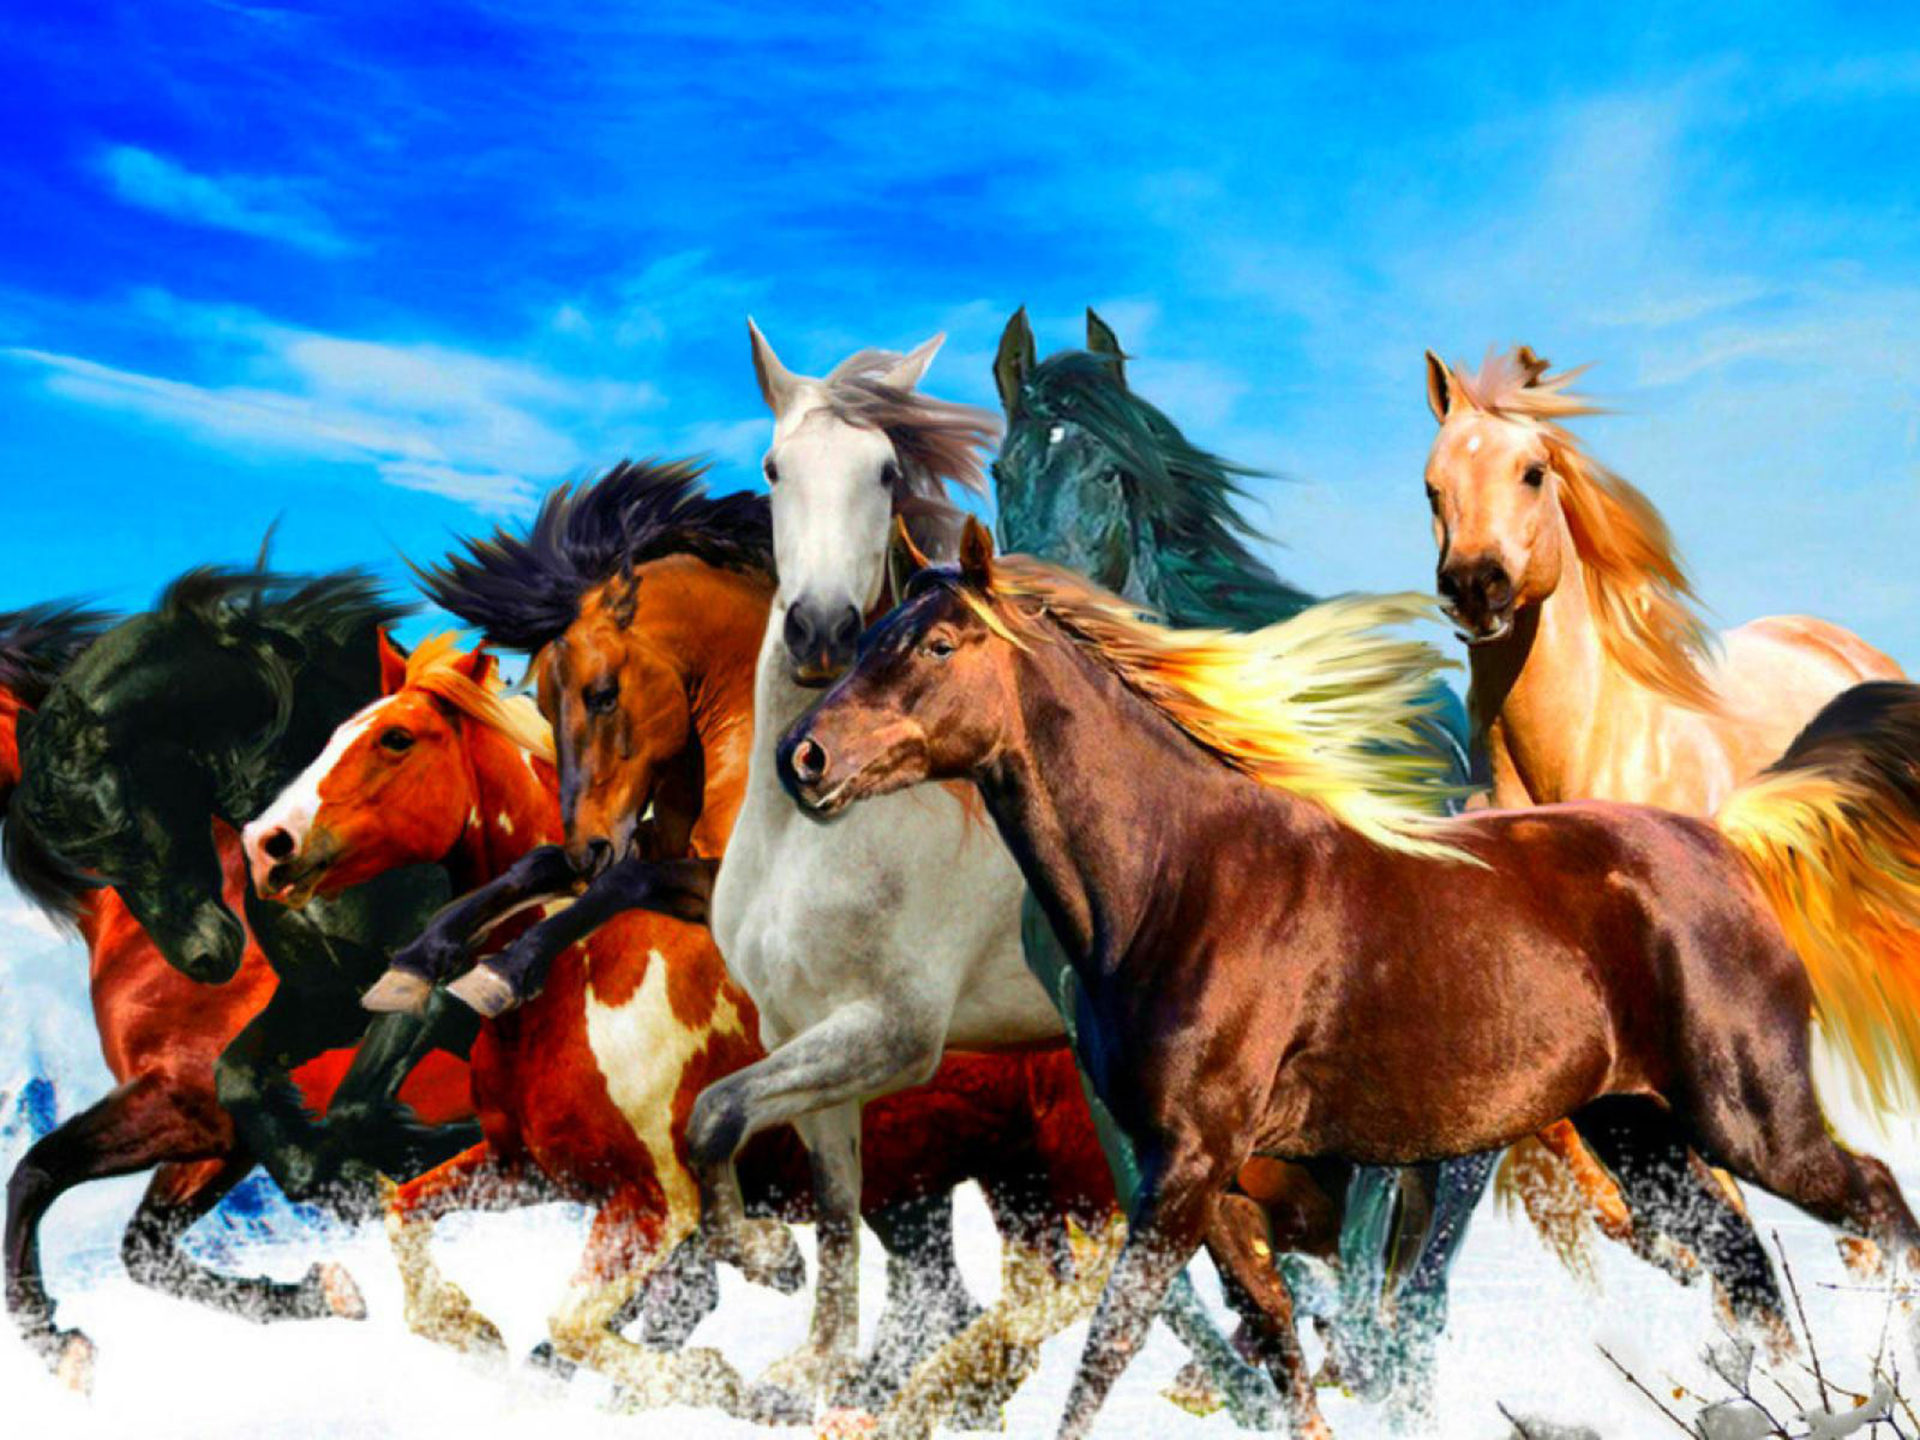 Wallpaper For Iphone X Live Beautiful Horses In Different Colors Blue Sky Hd Wallpaper